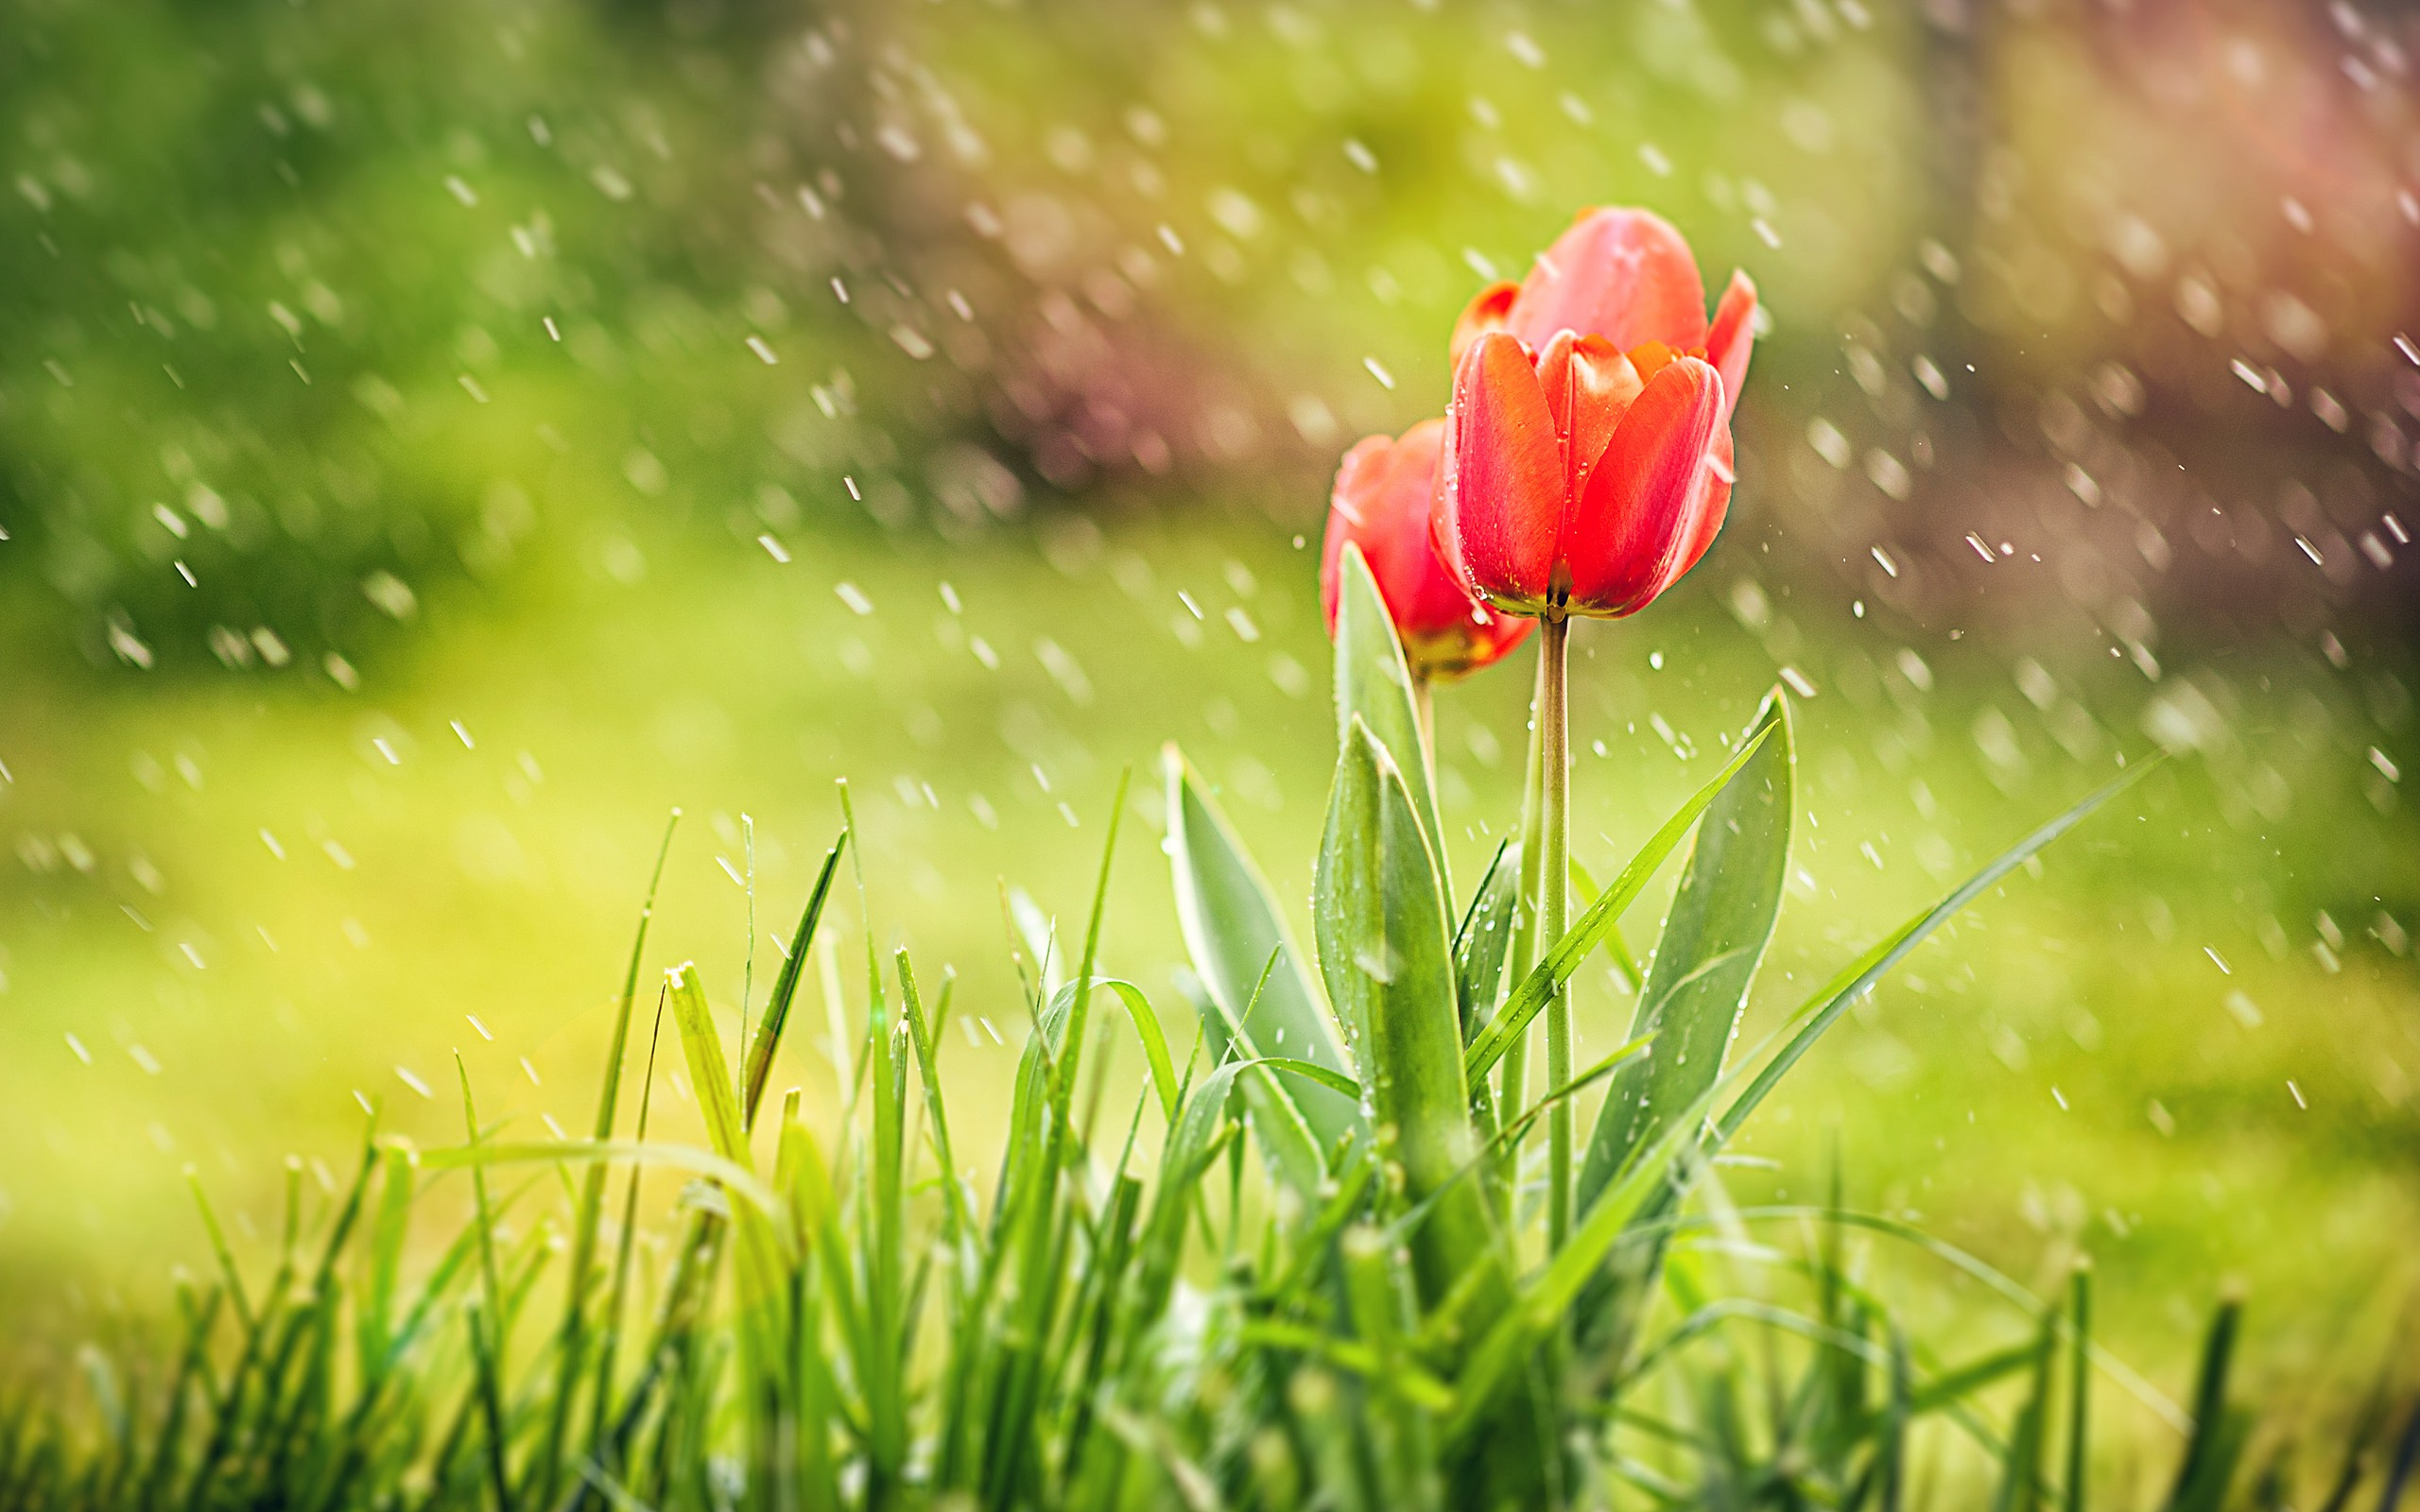 spring nature hd wallpapers - wallpapersafari